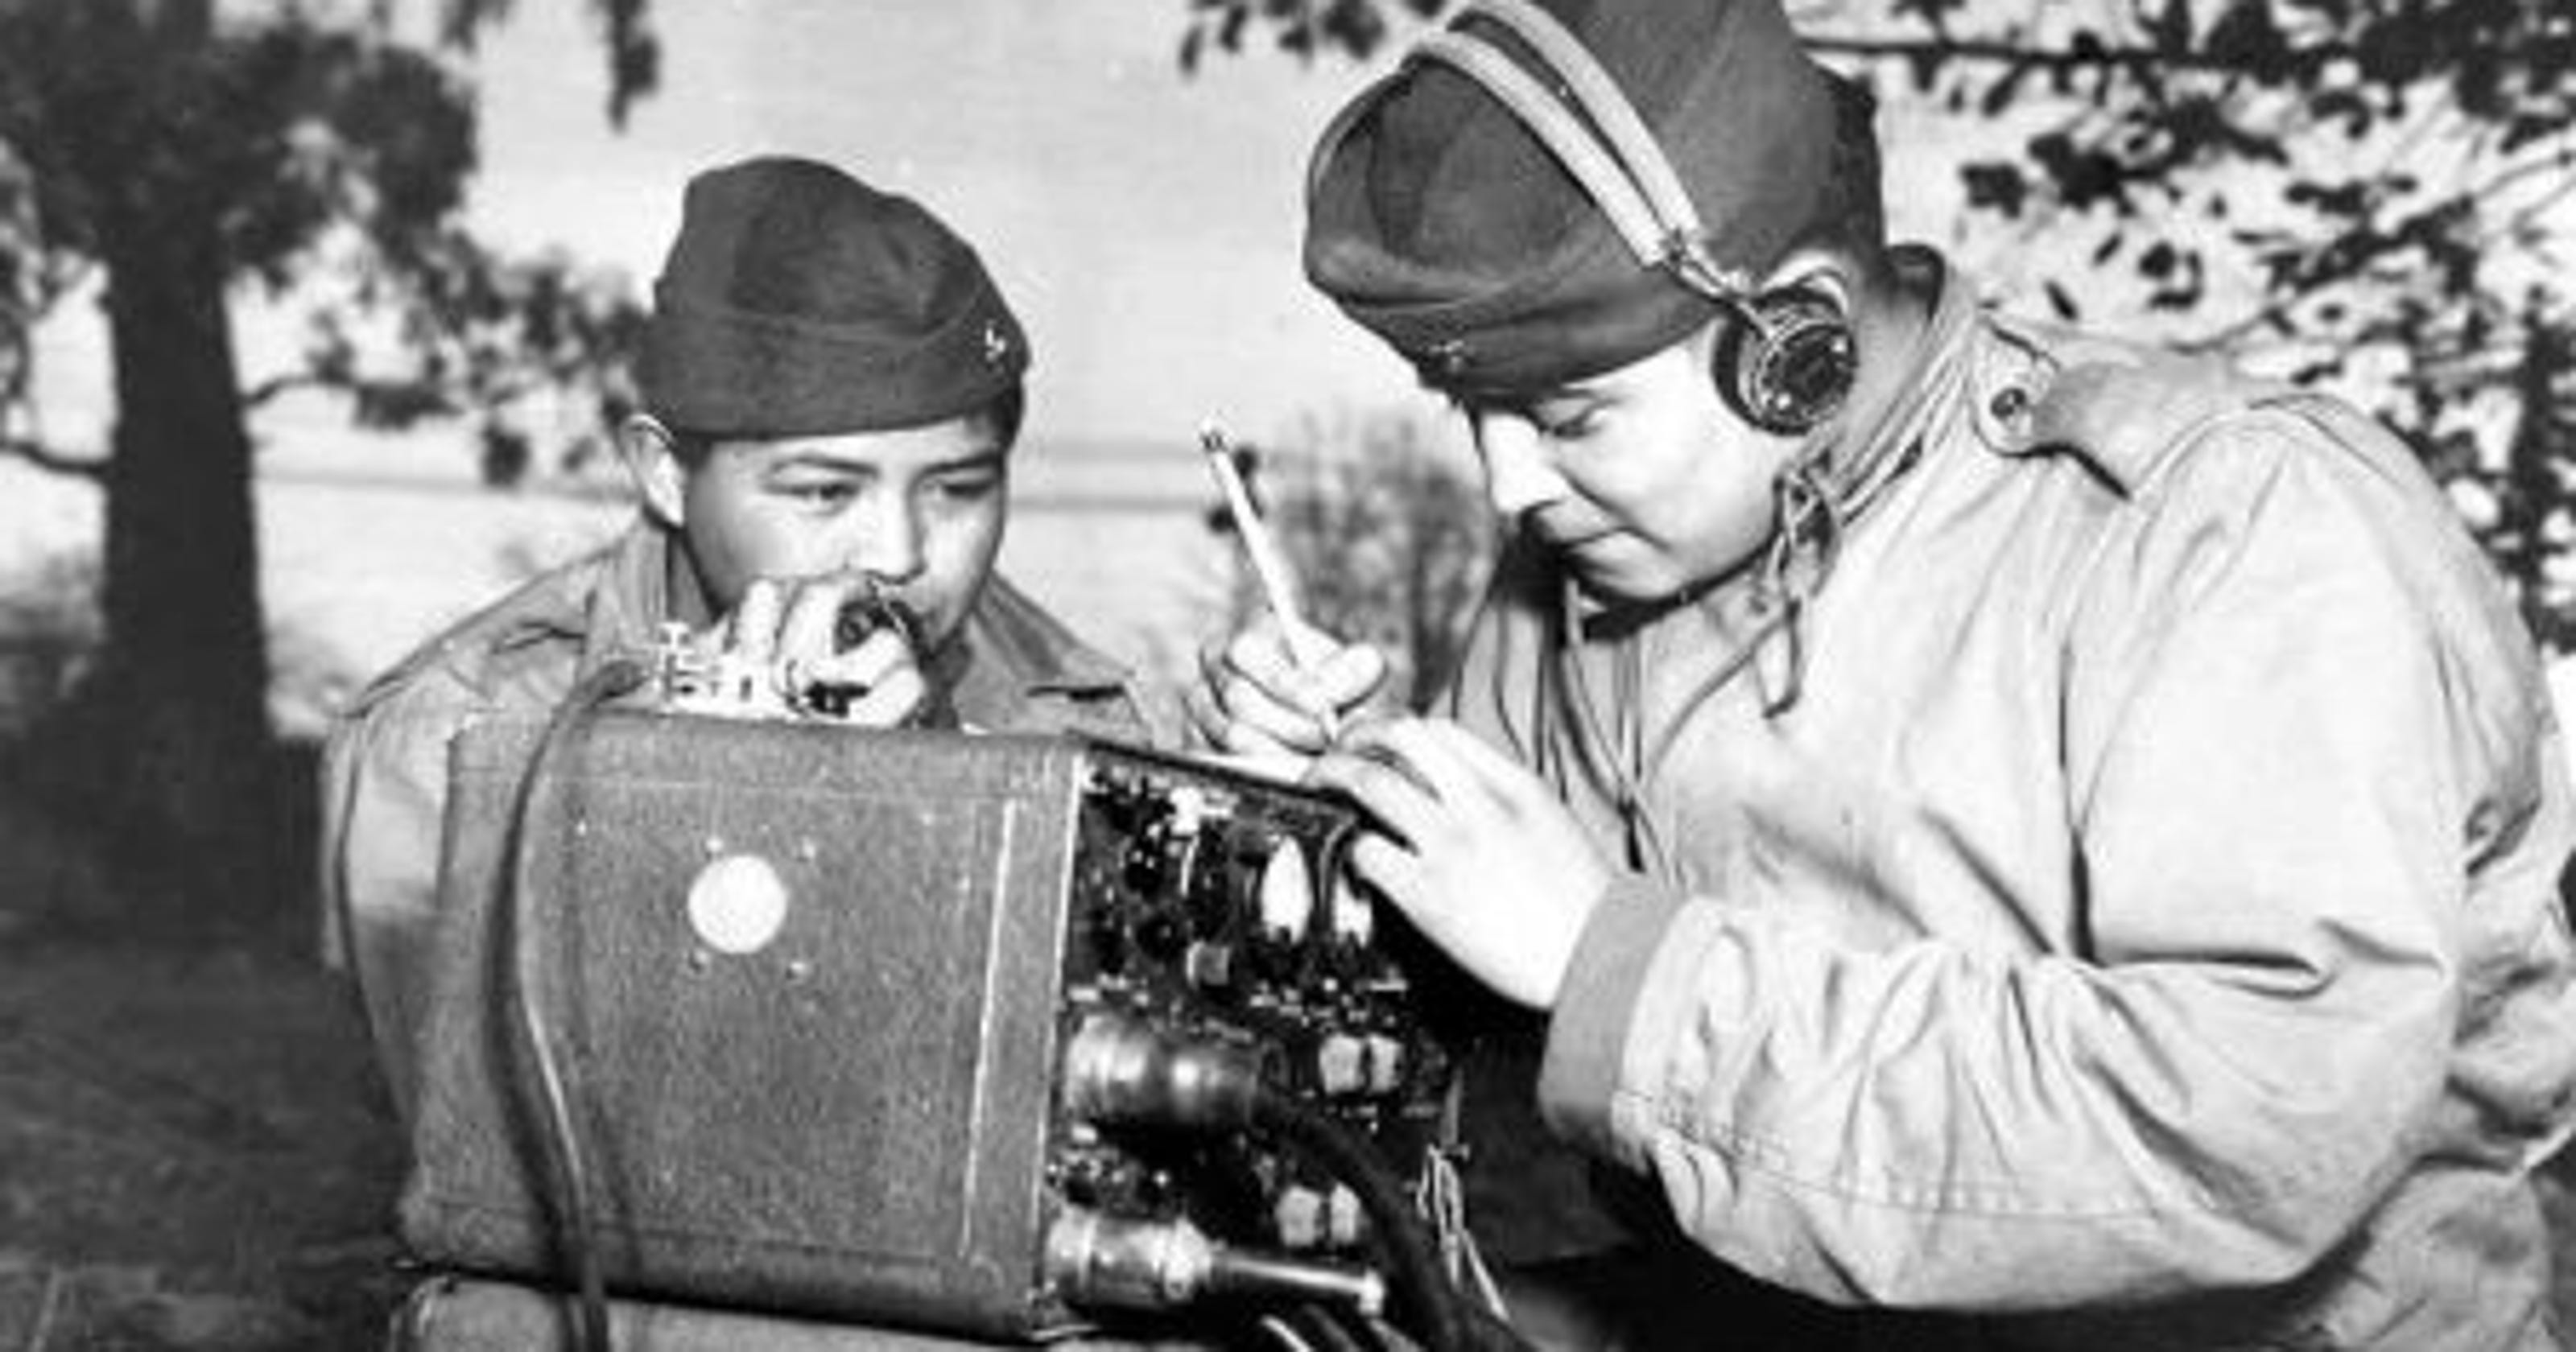 Navajo Code Talkers facts: Significance of their unbreakable